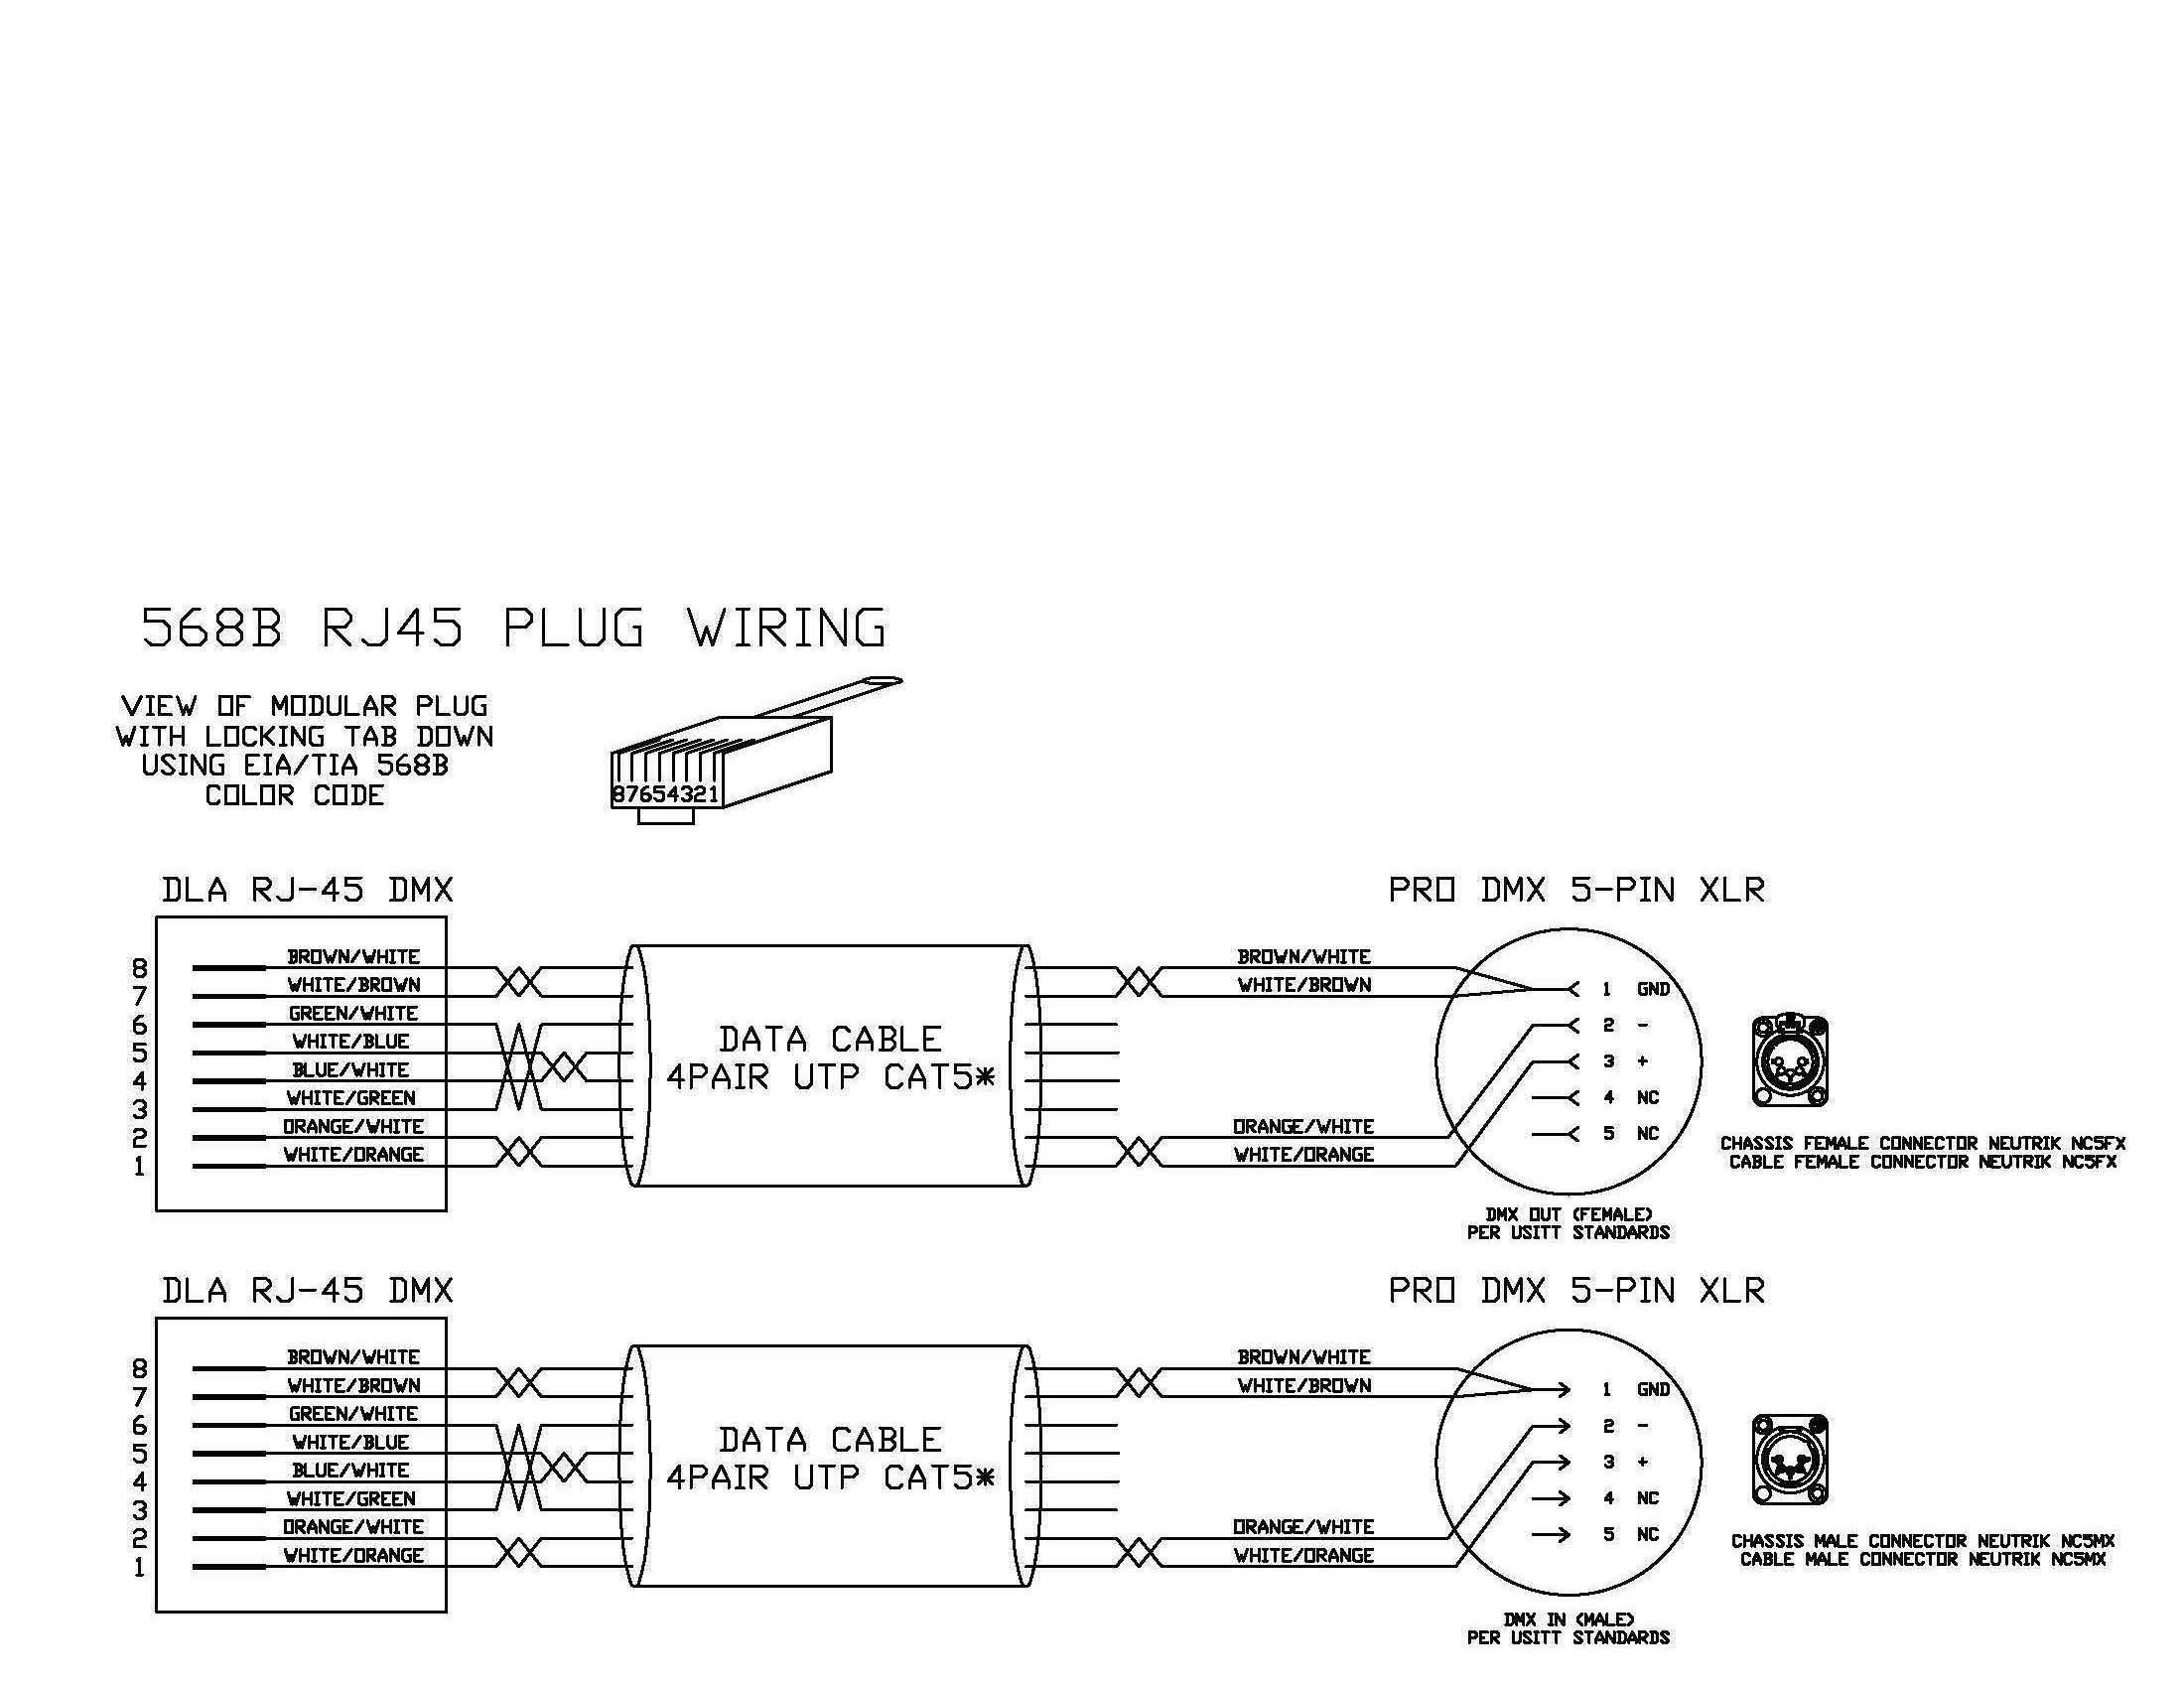 Xlr To Rj45 Wiring Diagram. Xlr. Electrical Wiring Diagrams | Cables ...